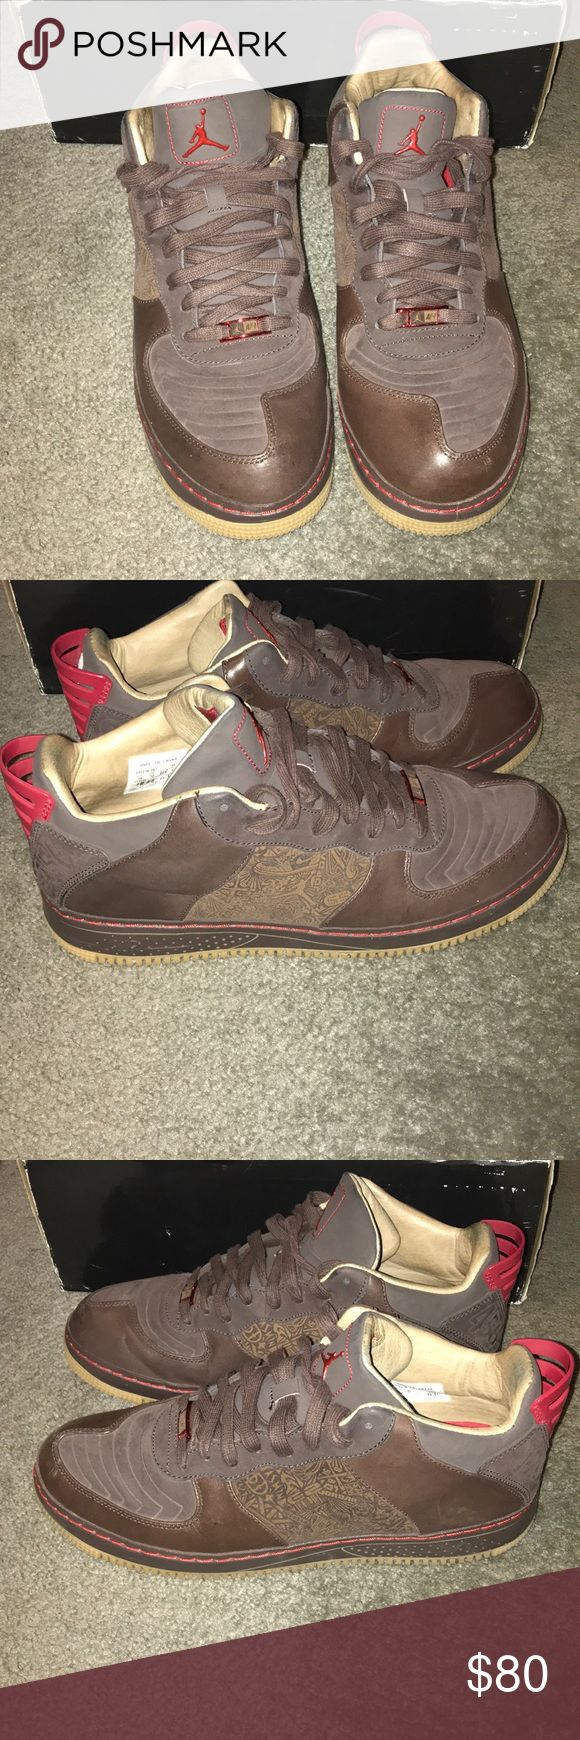 Nike AJF 20 Low LS AJF 20 Low LS. These are a fusion of Nike Air Force Ones and Jordan 20's. They have been worn as shown in the pictures and are still in good condition with lots of life left to them. They are coming from a smoke free environment and are 100% authentic. Jordan Shoes Sneakers